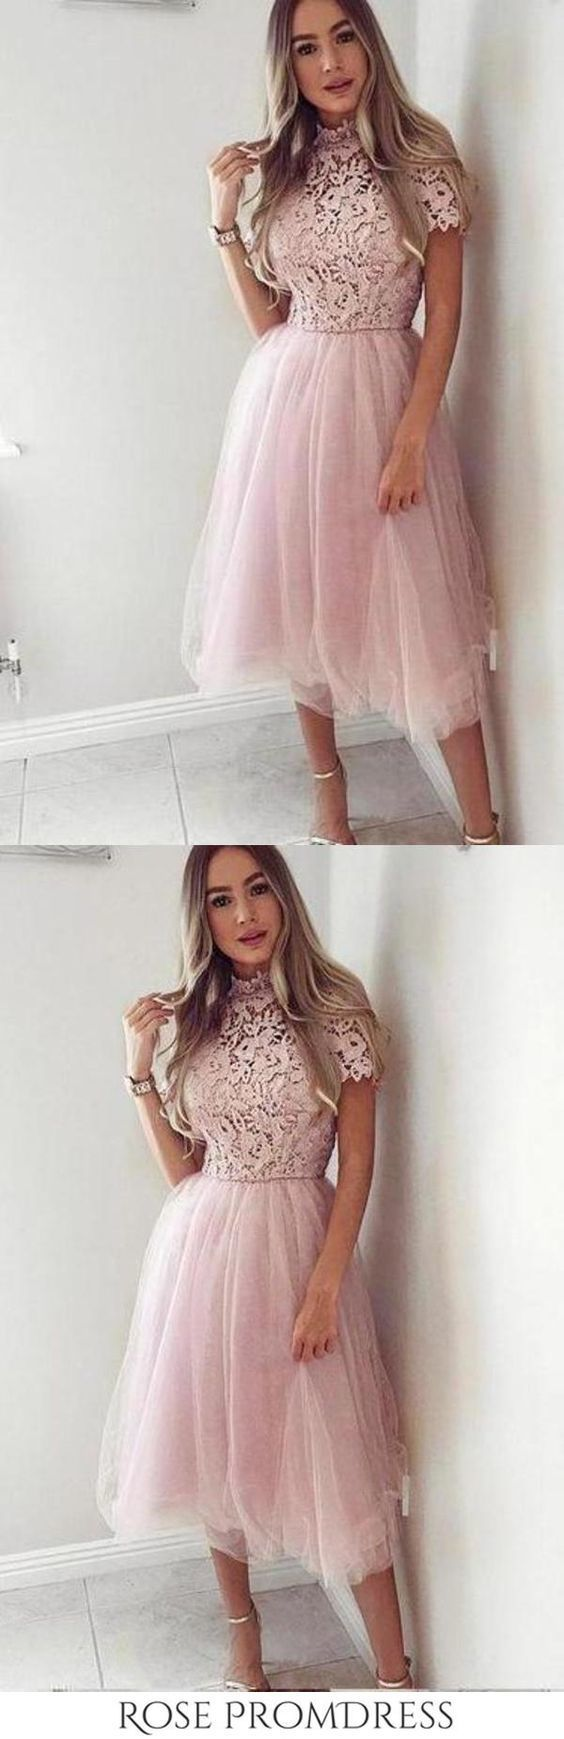 Pink Tea Length Tulle High Neck Short Sleeve Homecoming Dresses Short Prom